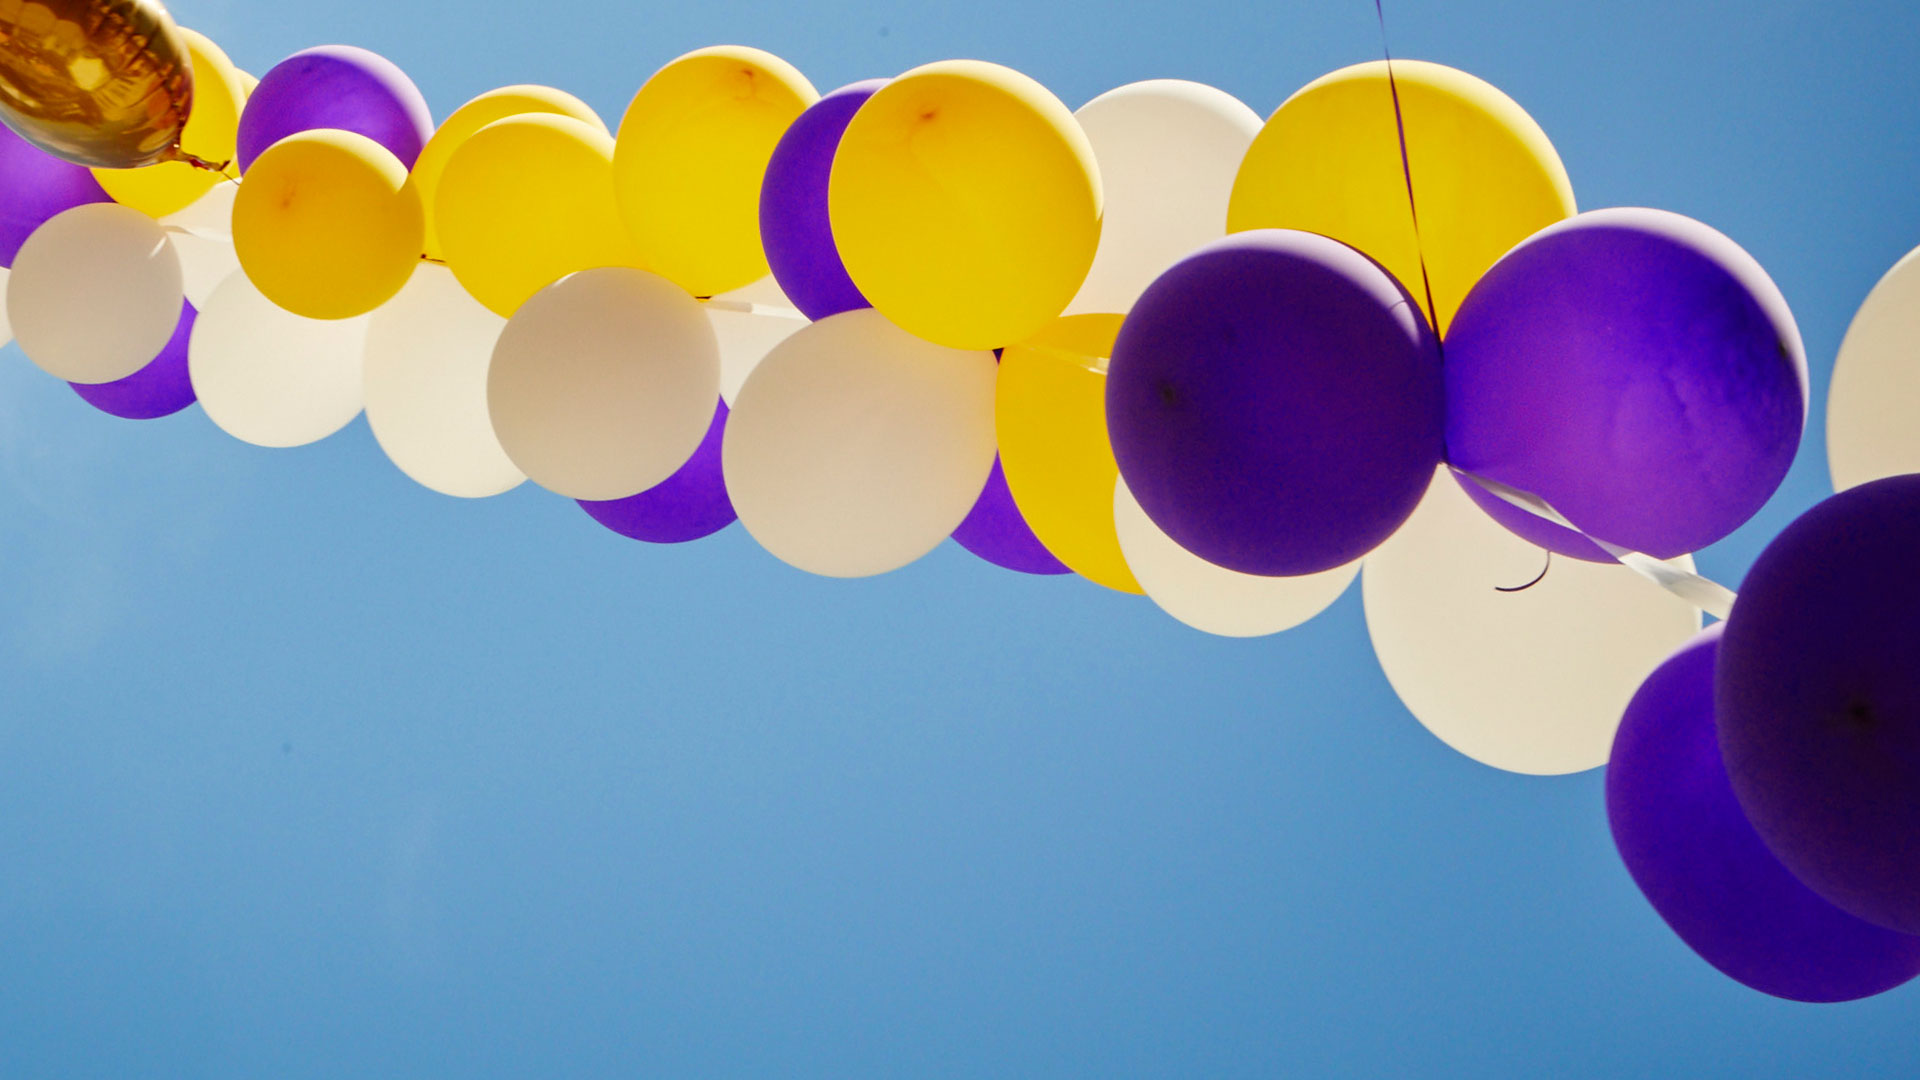 Purple, gold and white balloons against a blue sky